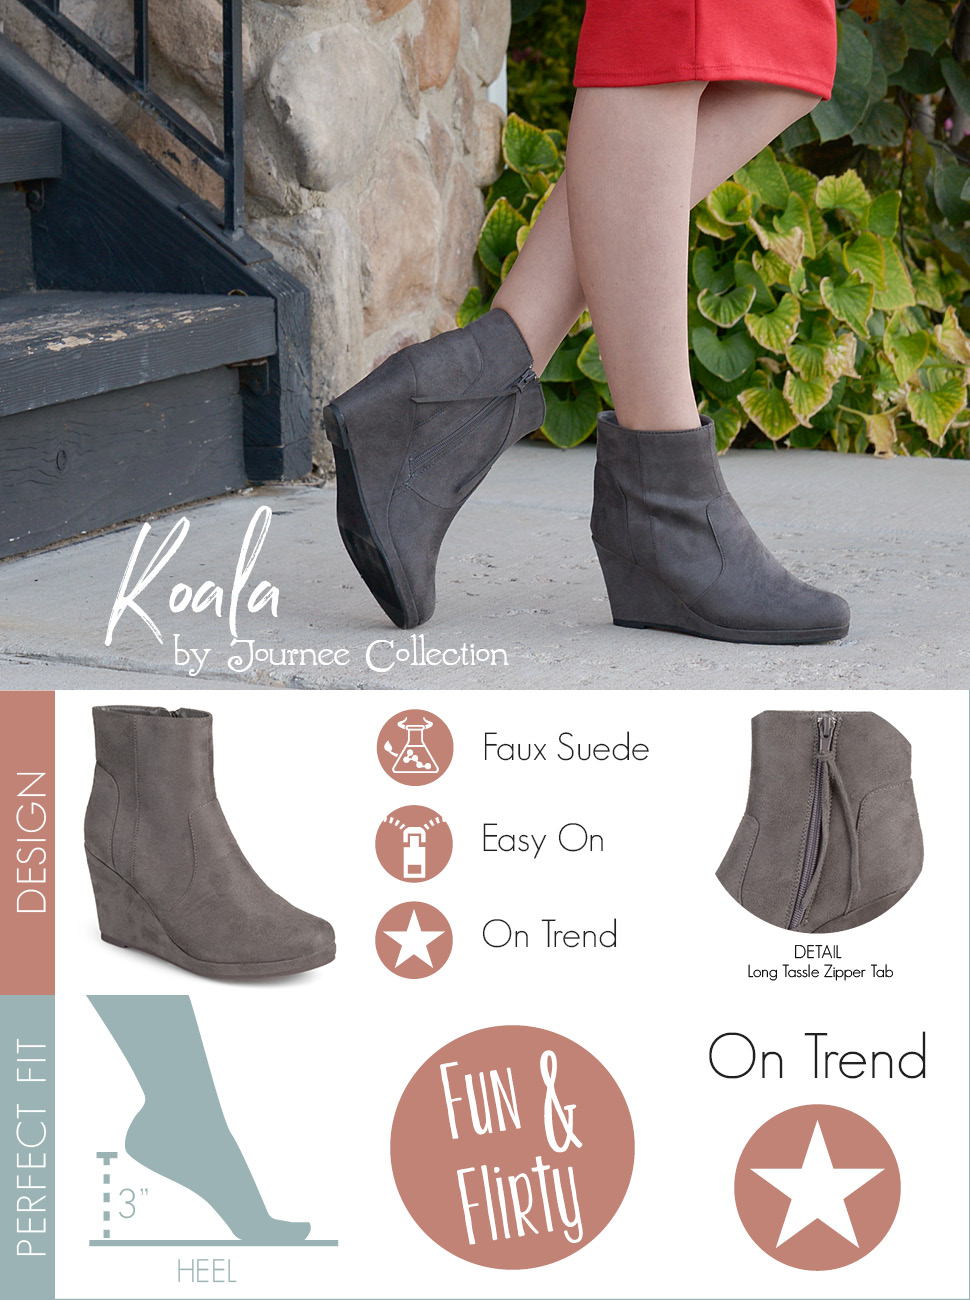 Journee Collection Enter ... Women's Wedge Booties IGHO9jDAyX